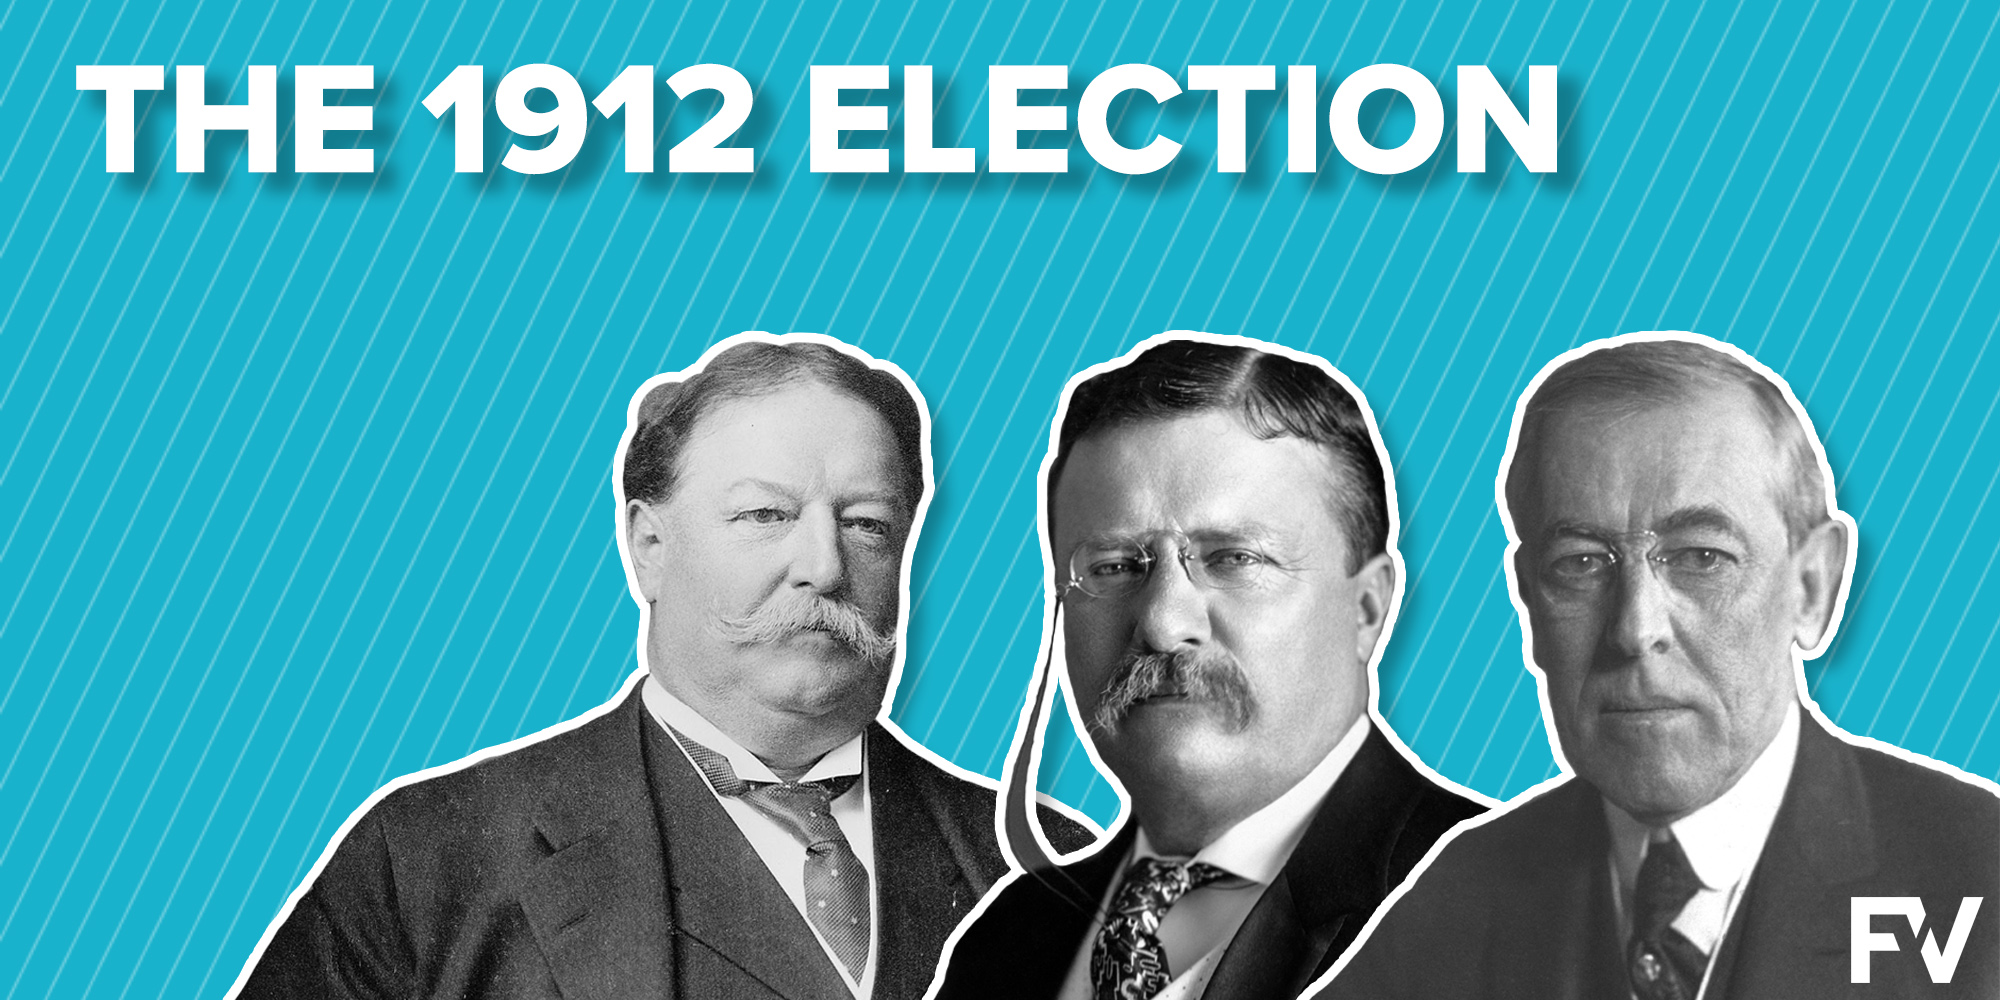 Heed the Lessons of 1912: Implement Ranked Choice Voting